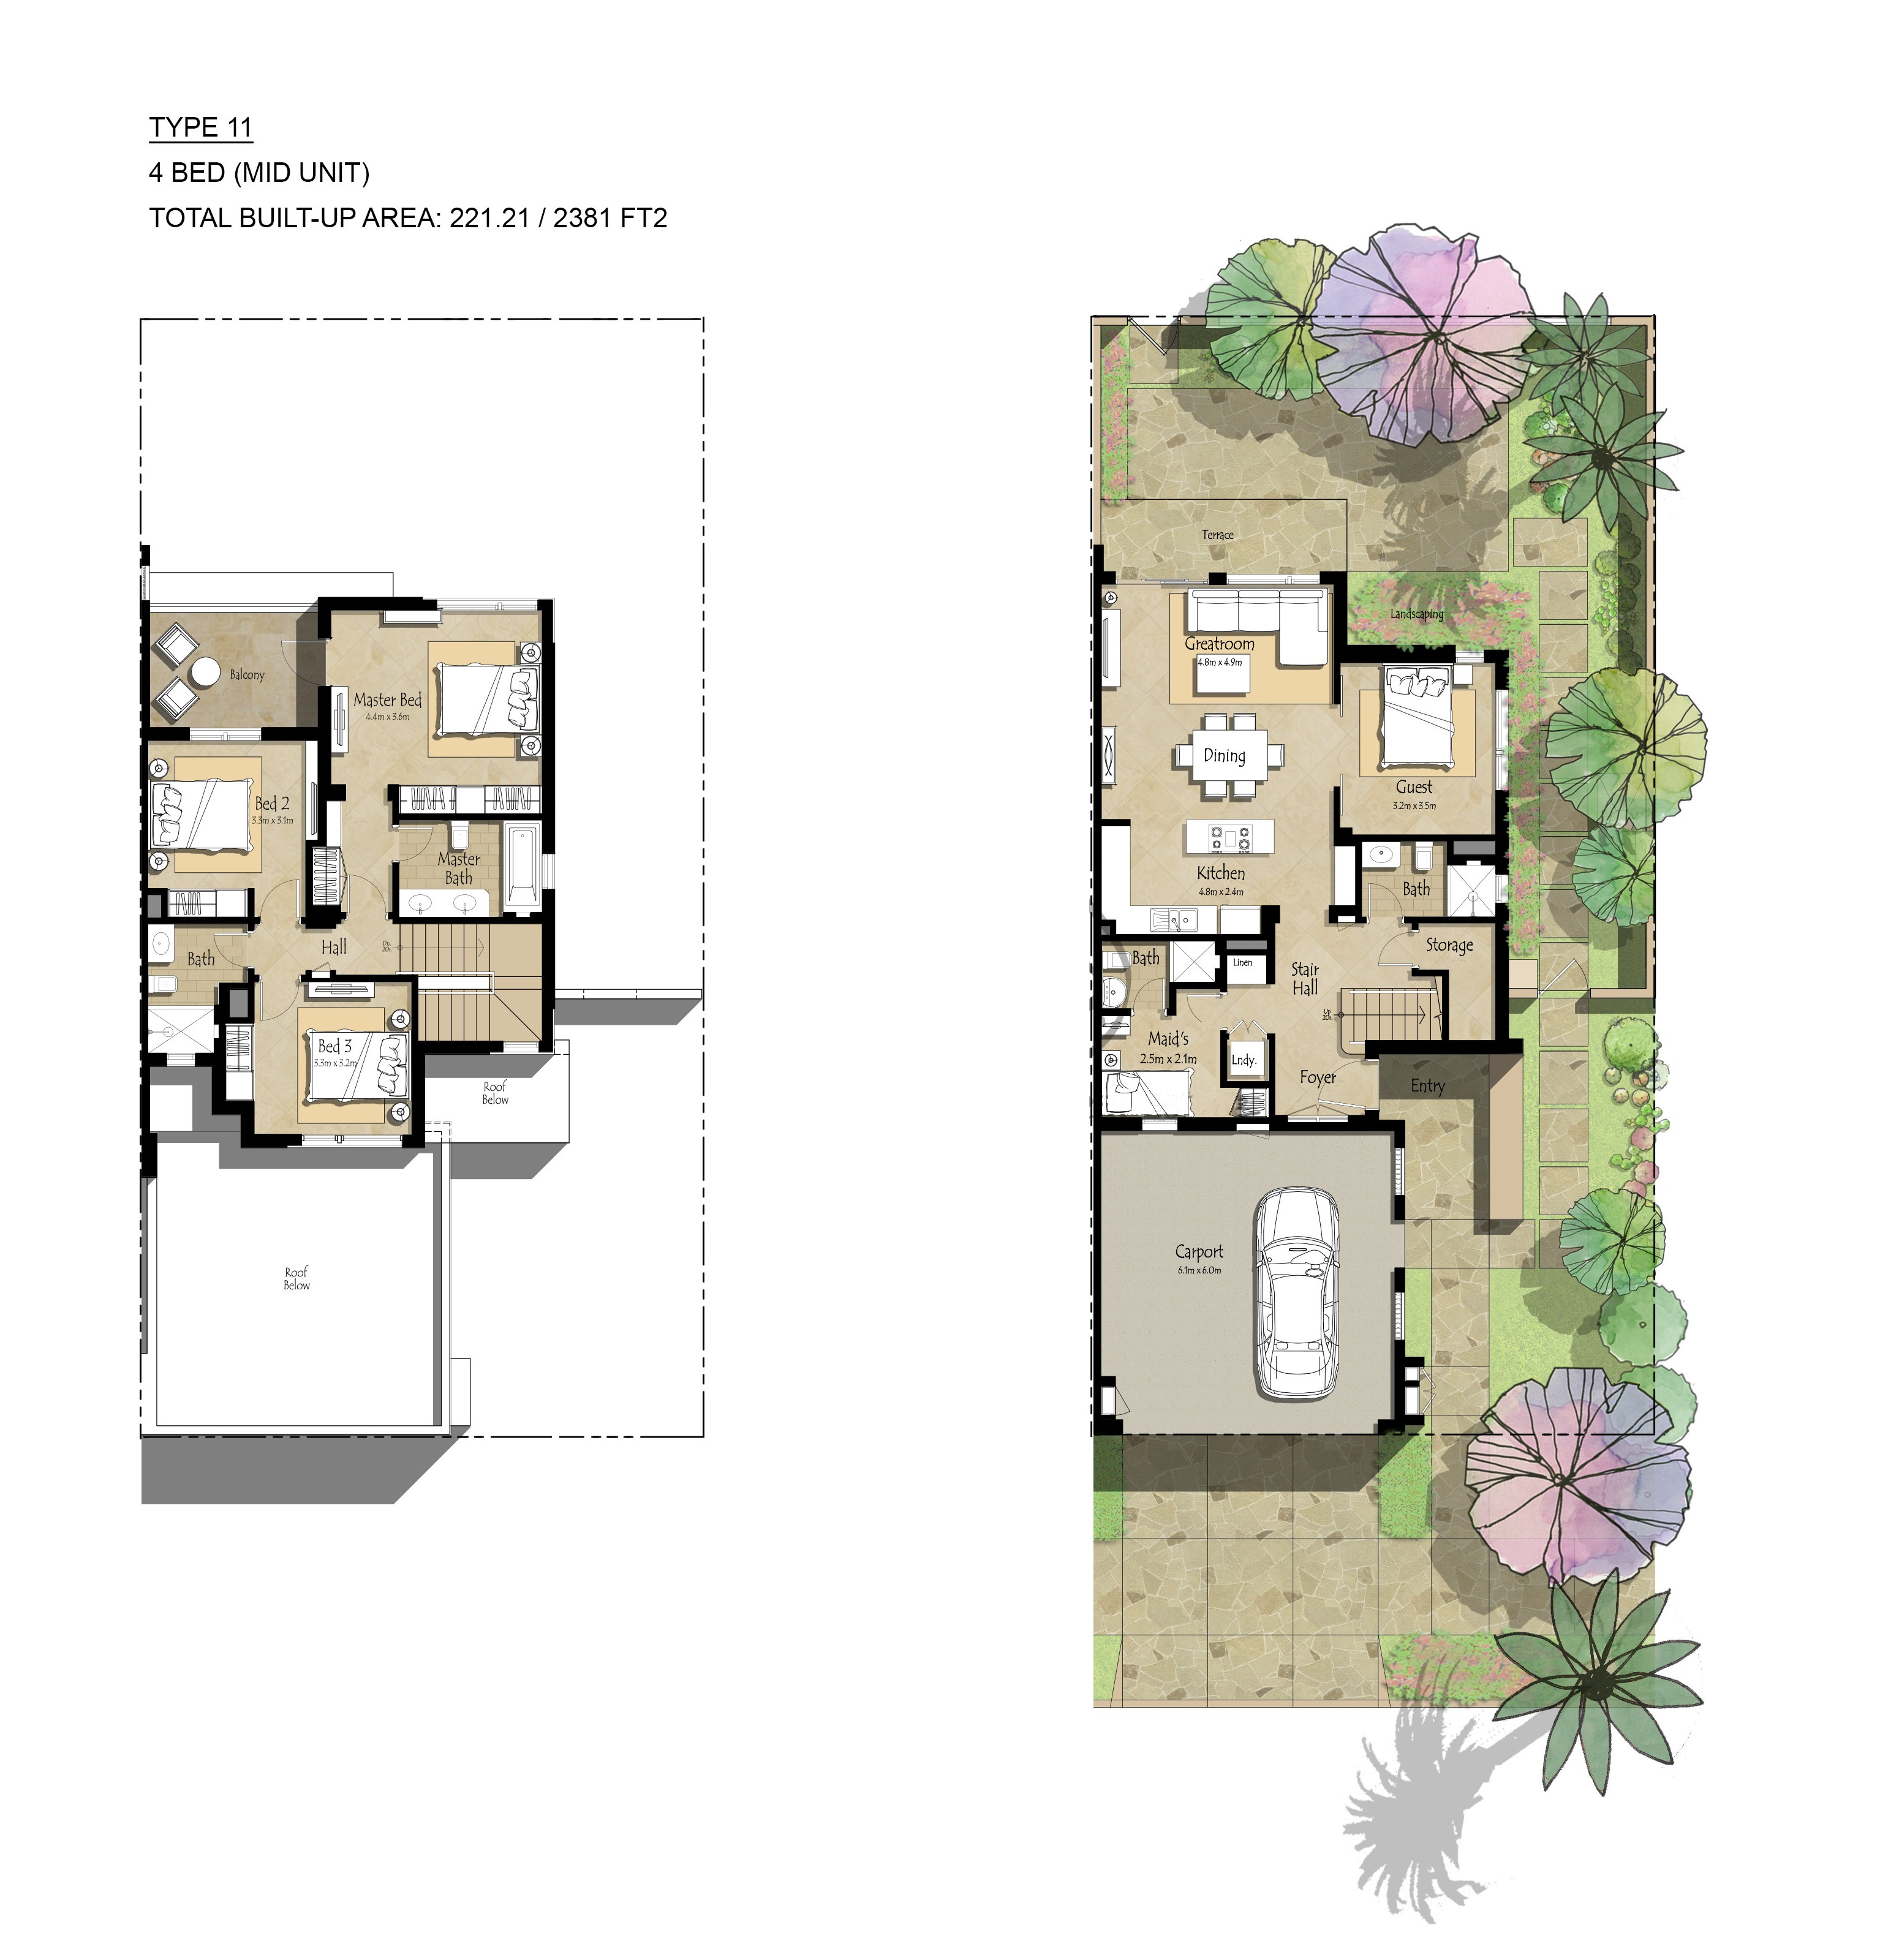 Safi townhouse floor plans town square dubai Townhouse layout 3 bedrooms